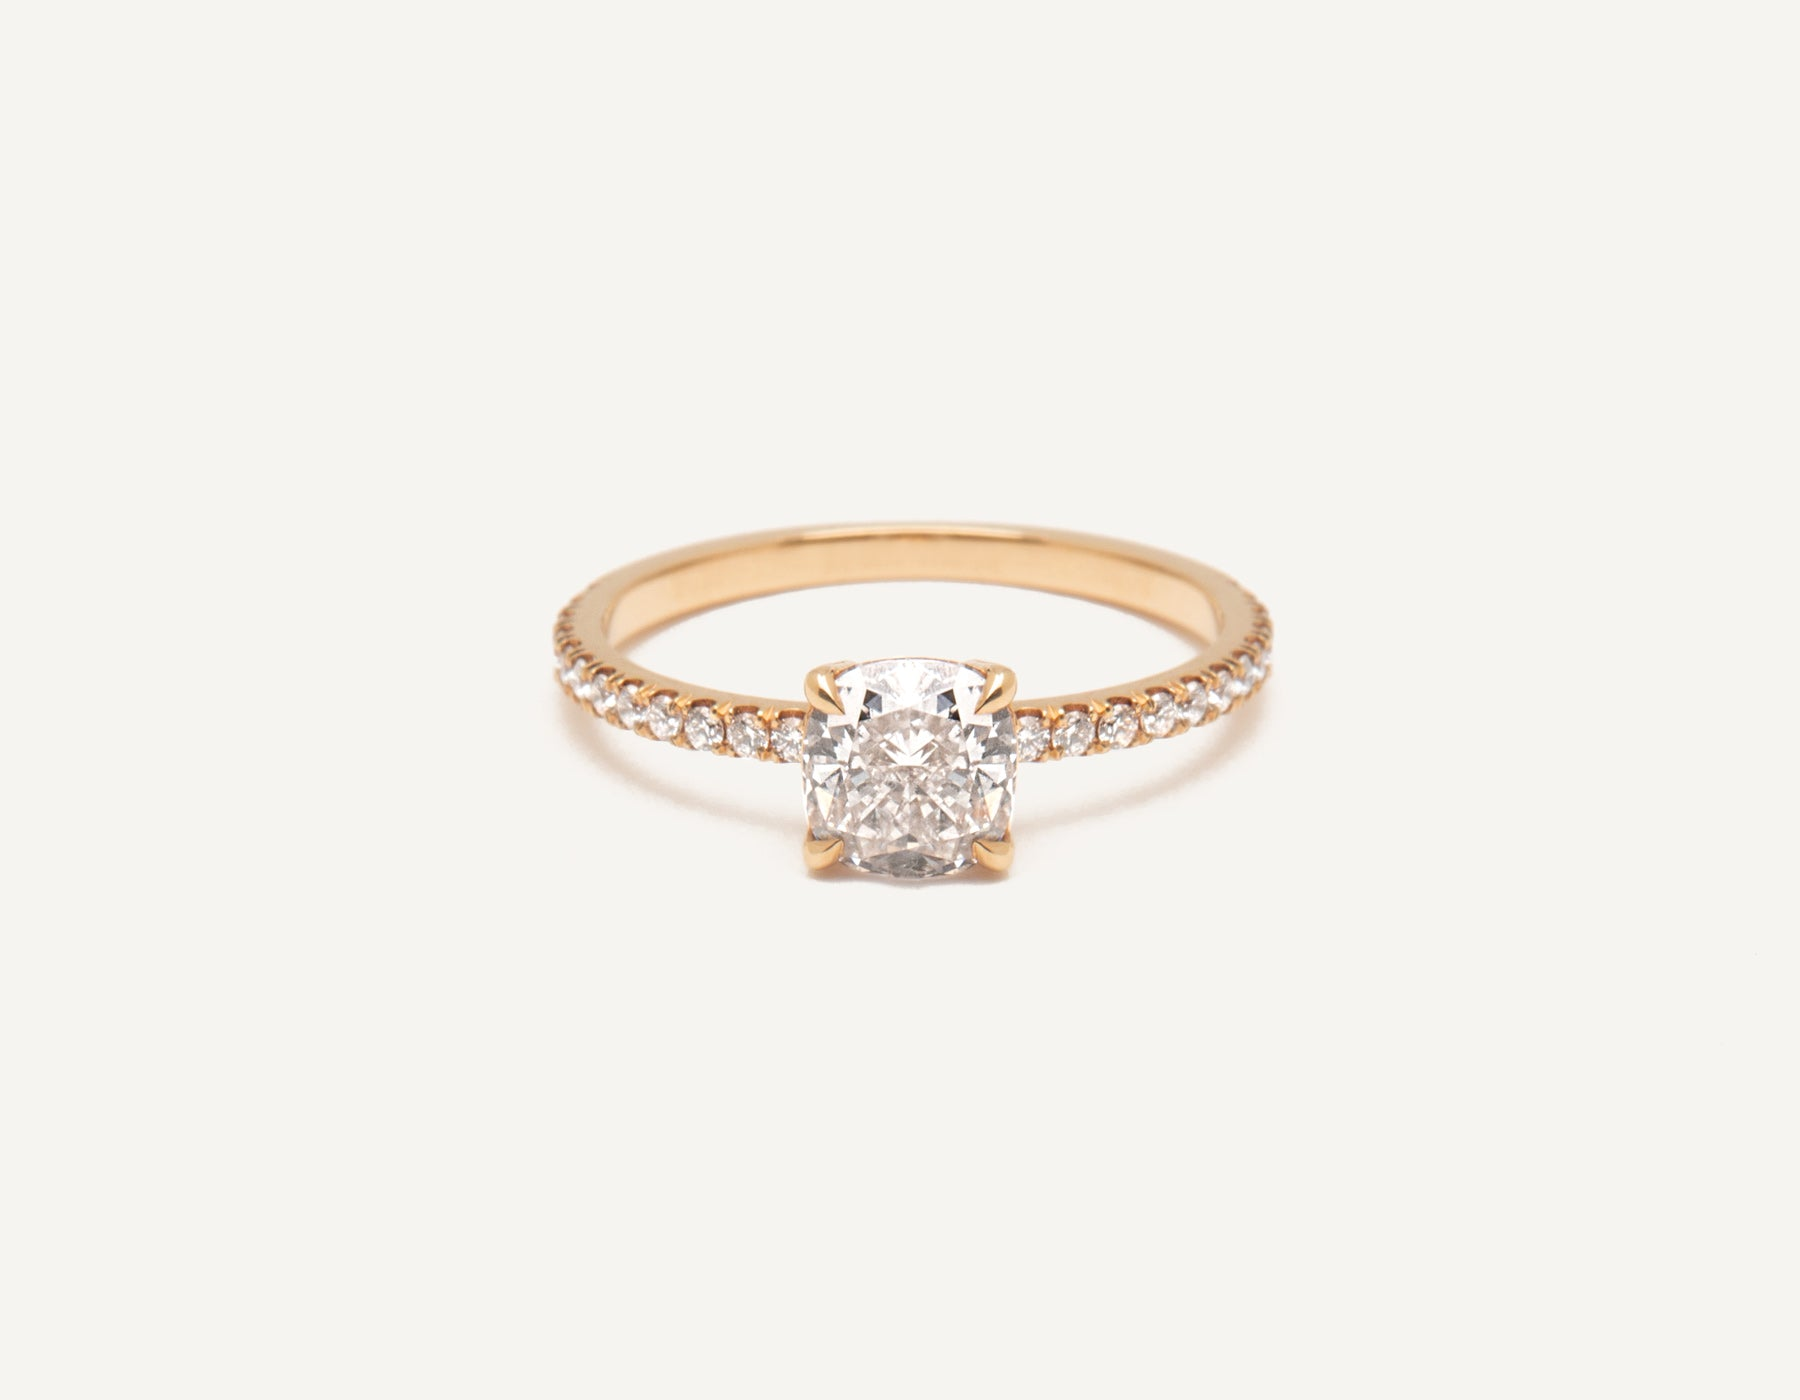 Minimalist 18k solid rose gold The Cushion Pave engagement ring 1 ct diamond Vrai and Oro